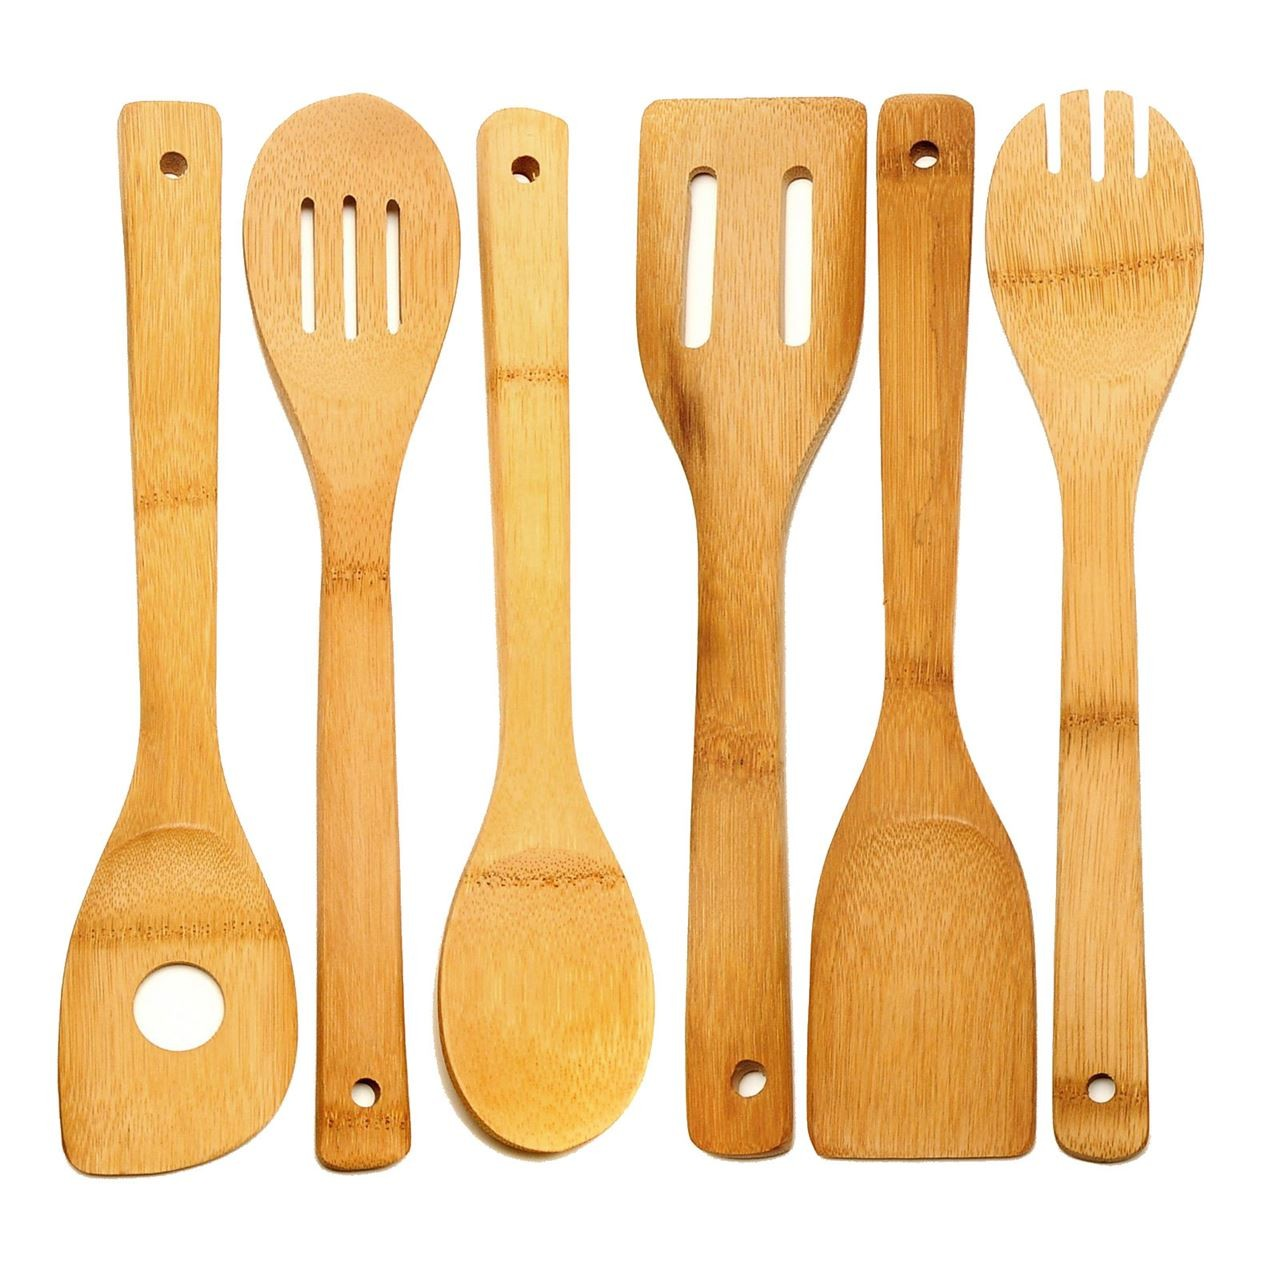 Wooden Ice Cream Sticks Taster Spoons Craft Sticks Wood Skewers Fan Handles Bamboo Kitchen Utensils Tools Pack Of 6 Specials Clearance